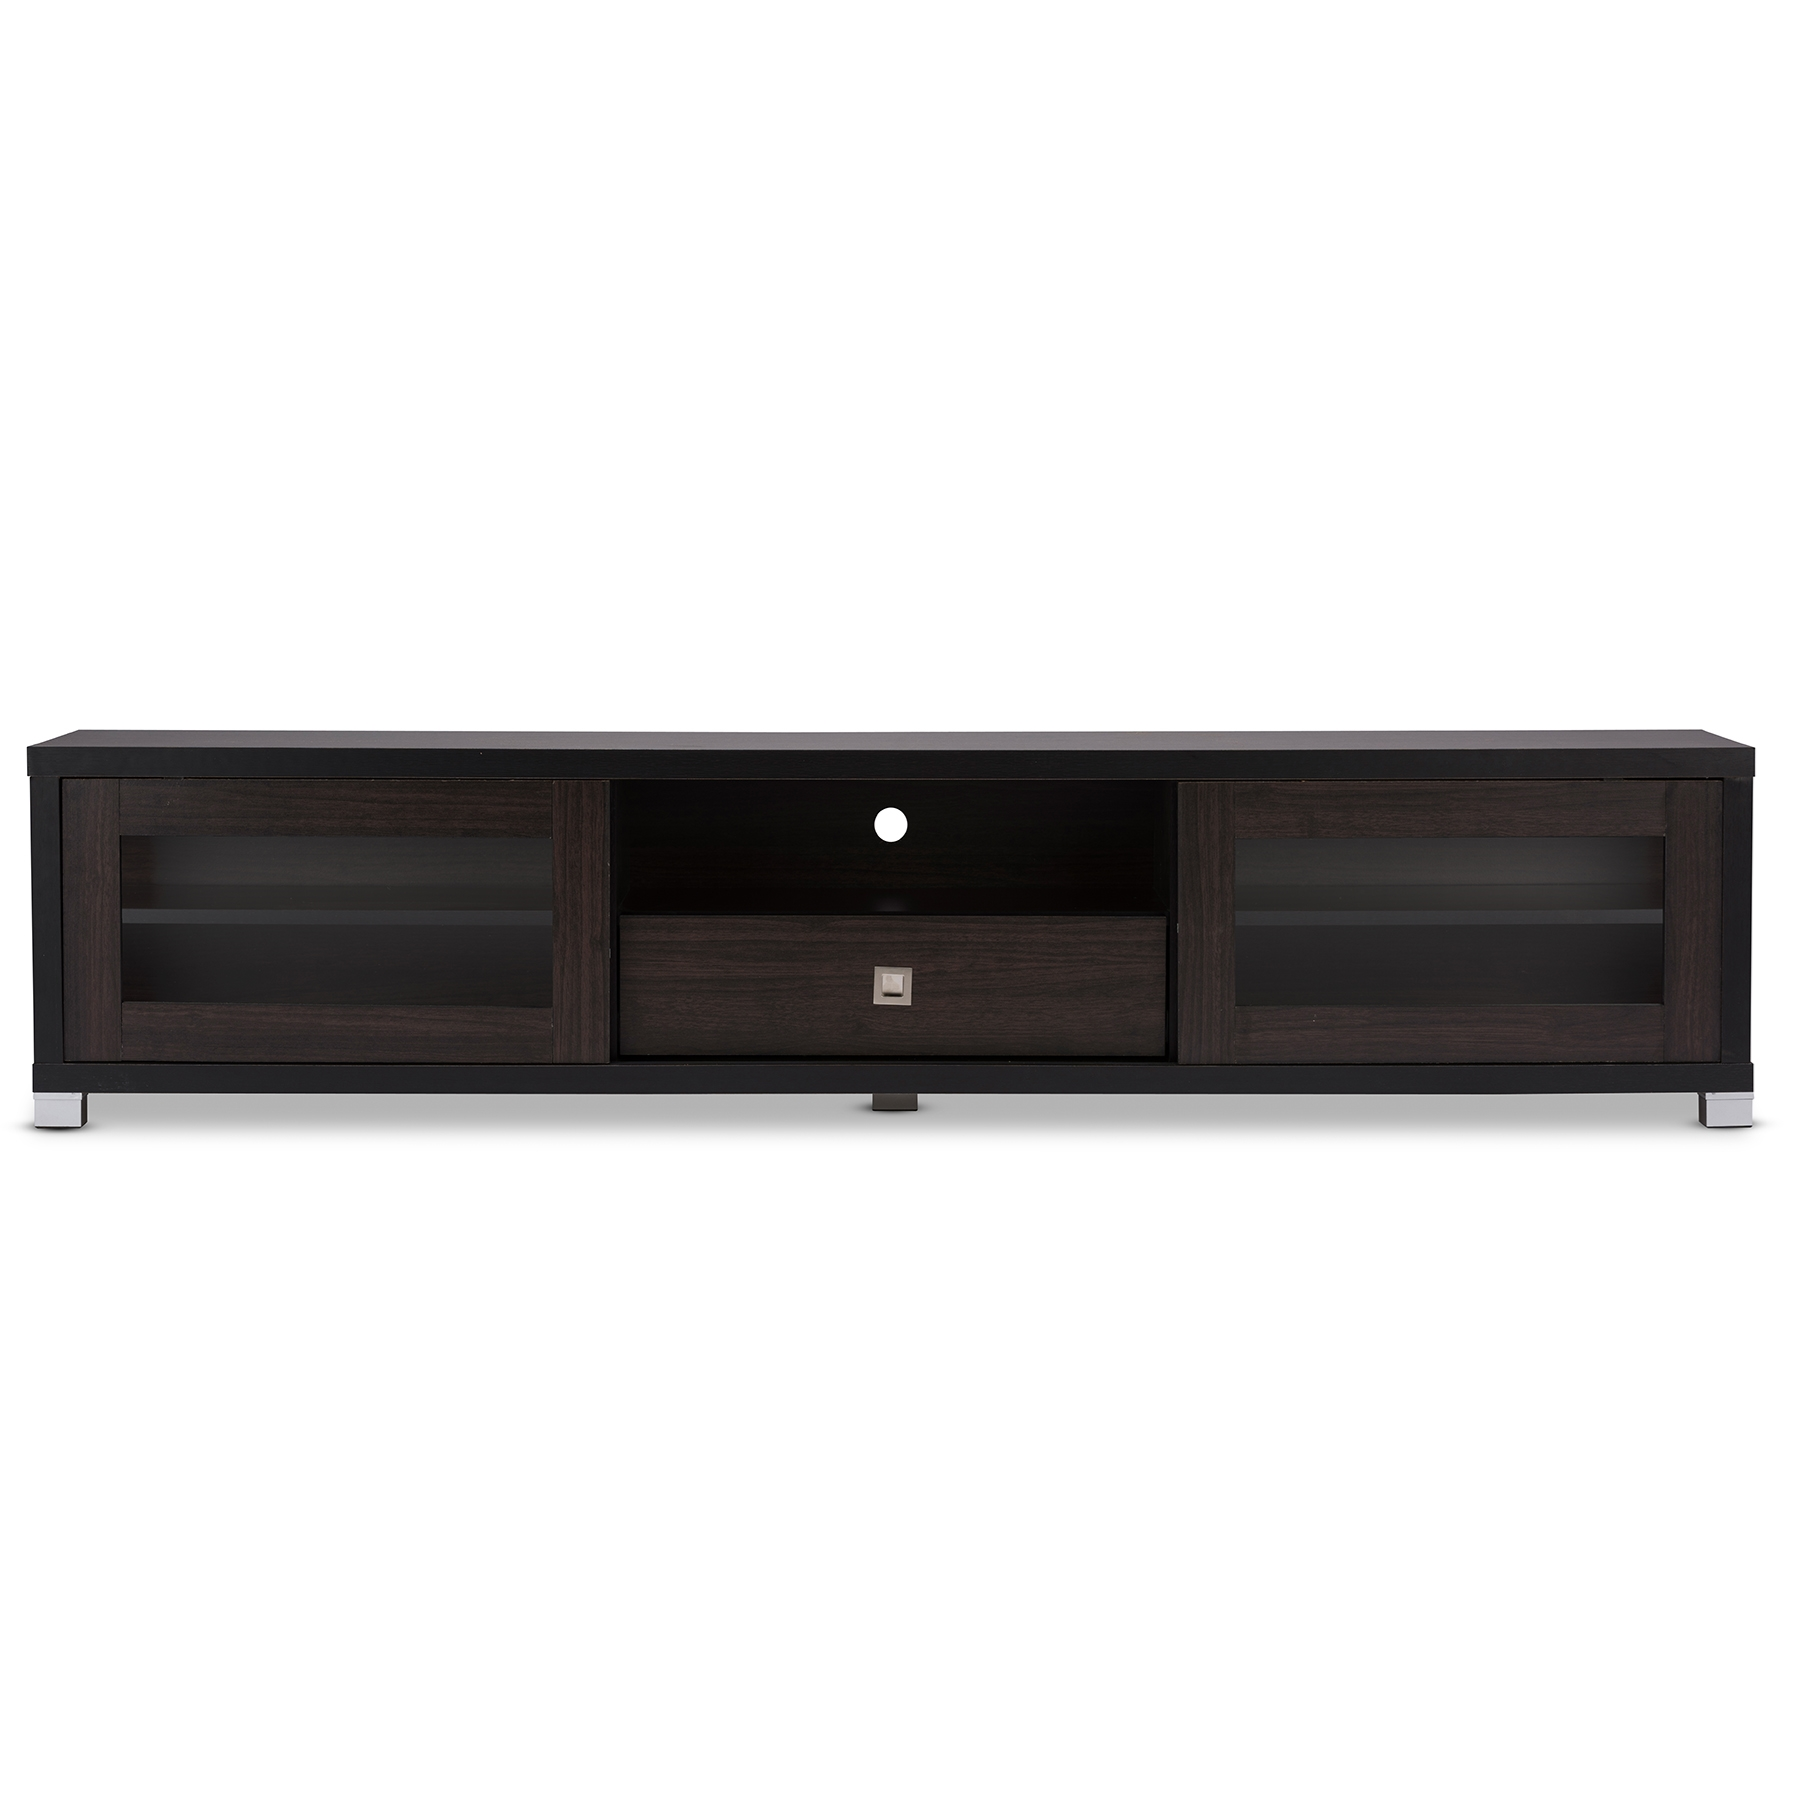 Gentil Baxton Studio Beasley 70 Inch Dark Brown TV Cabinet With 2 Sliding Doors  And Drawer